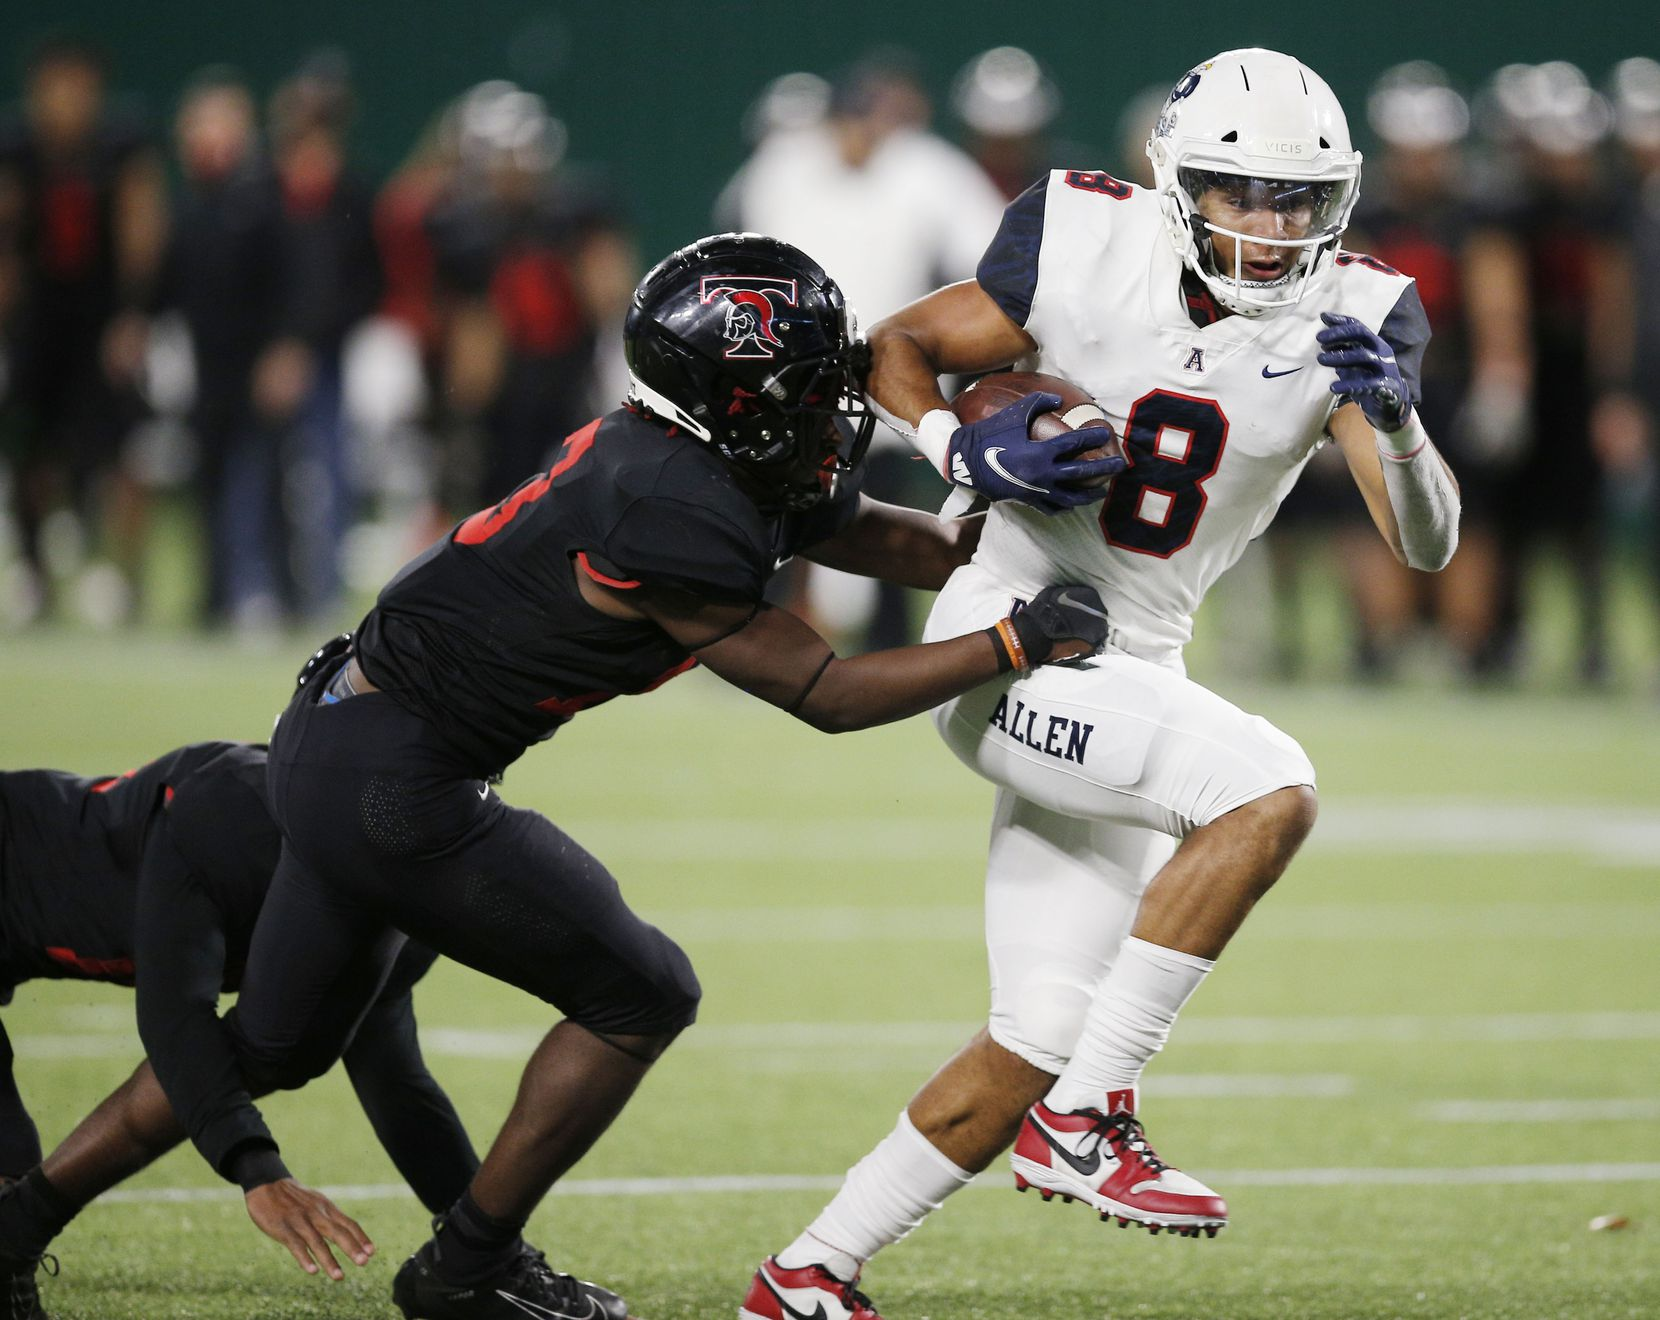 Allen senior wide receiver Blaine Green (8) breaks past Euless Trinity junior defensive back Jacob Schaeffer (13) to score a touchdown during the first half of a high school Class 6A Division I Region I semifinal football game at Globe Life Park in Arlington, Saturday, December 26, 2020. (Brandon Wade/Special Contributor)